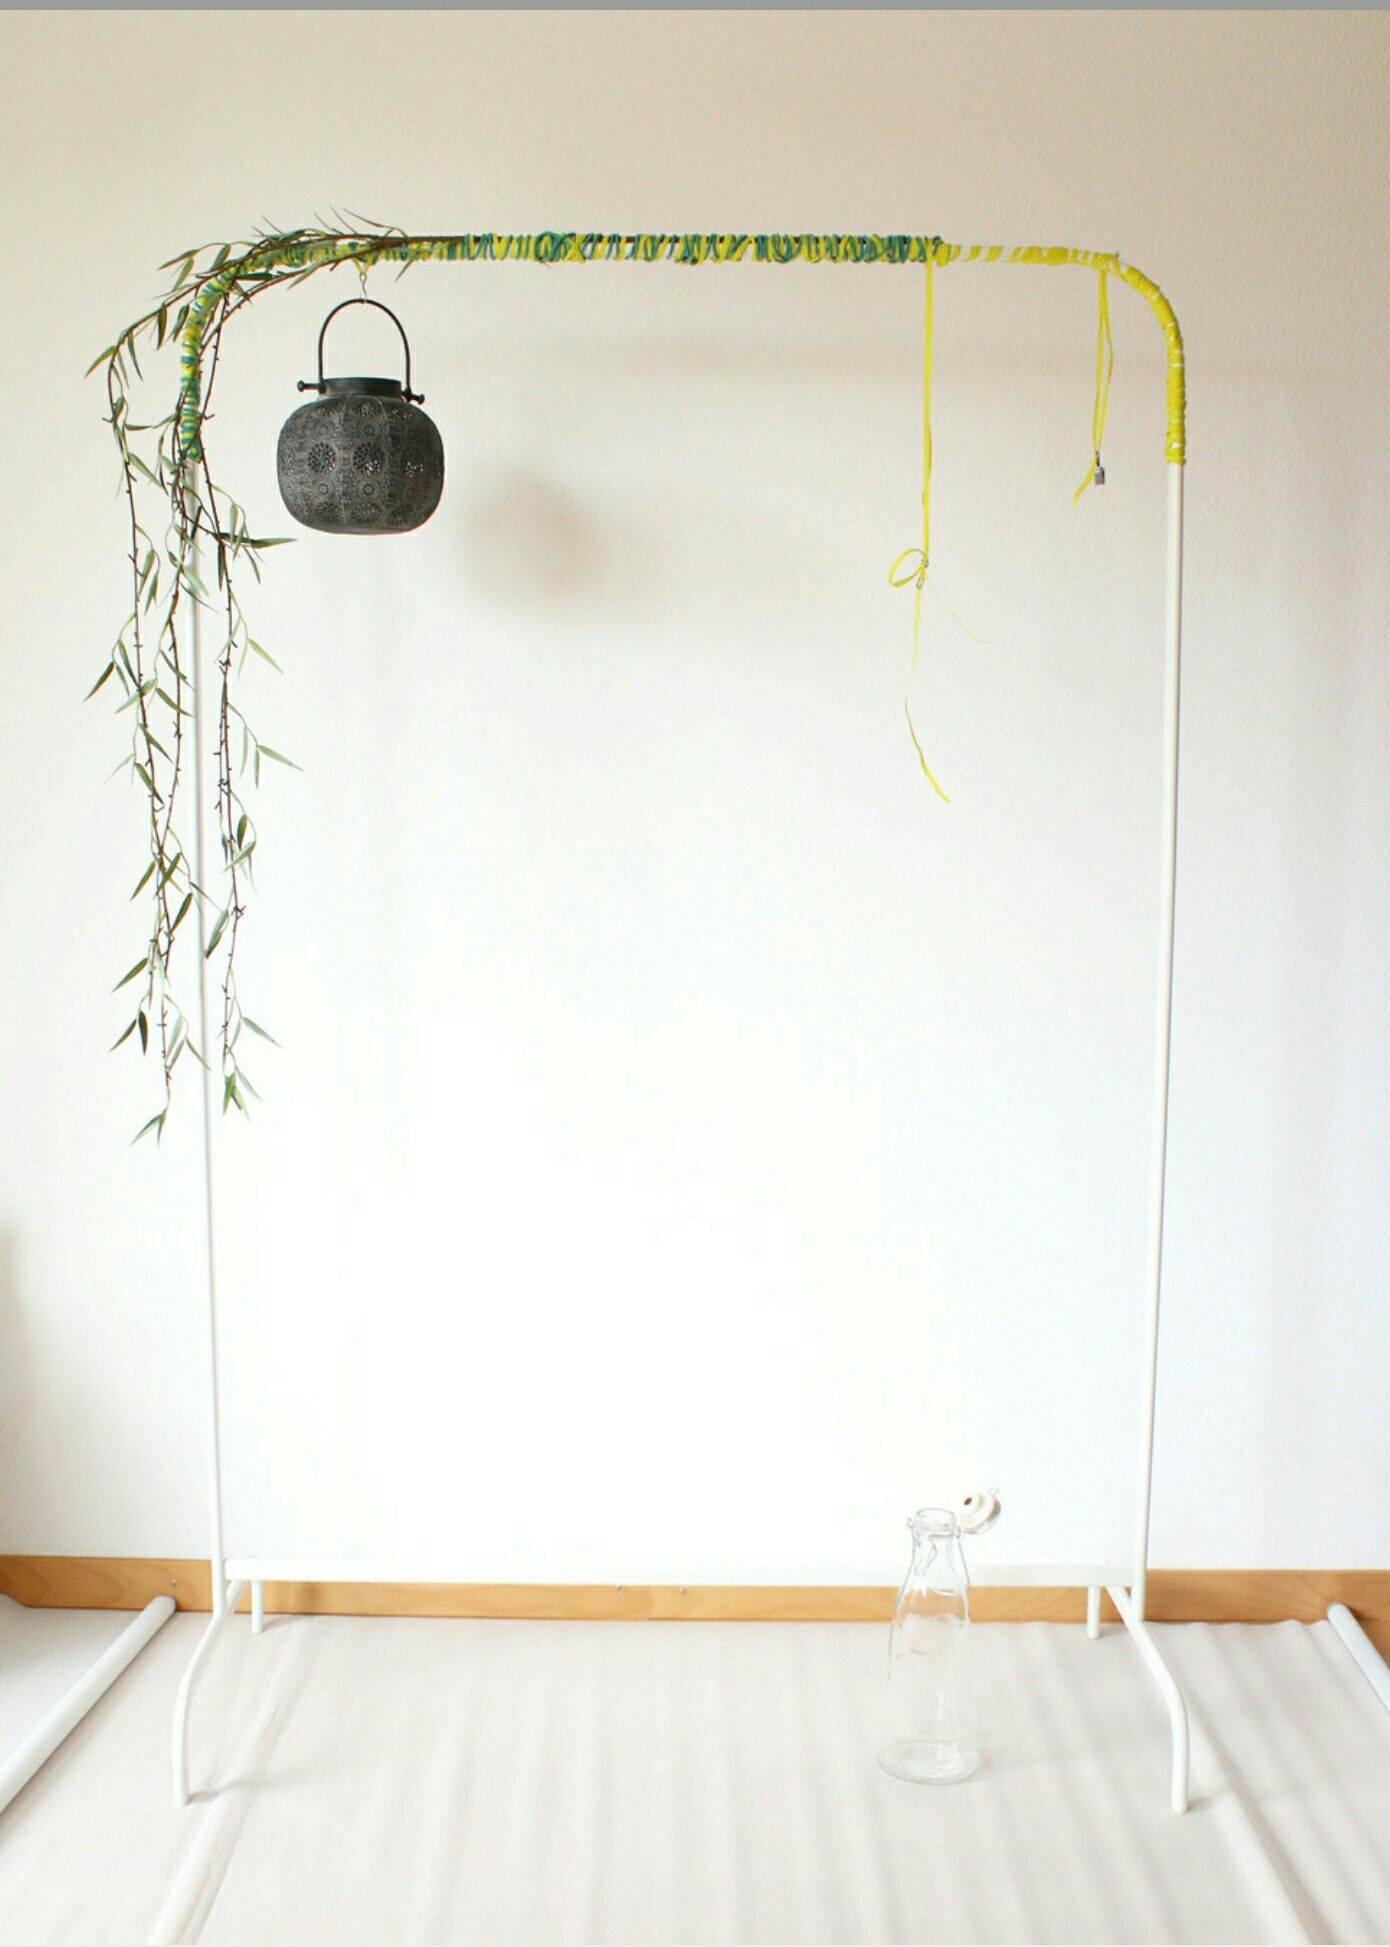 Ikea Mulig Hack From Hanging Rack To Garden Display